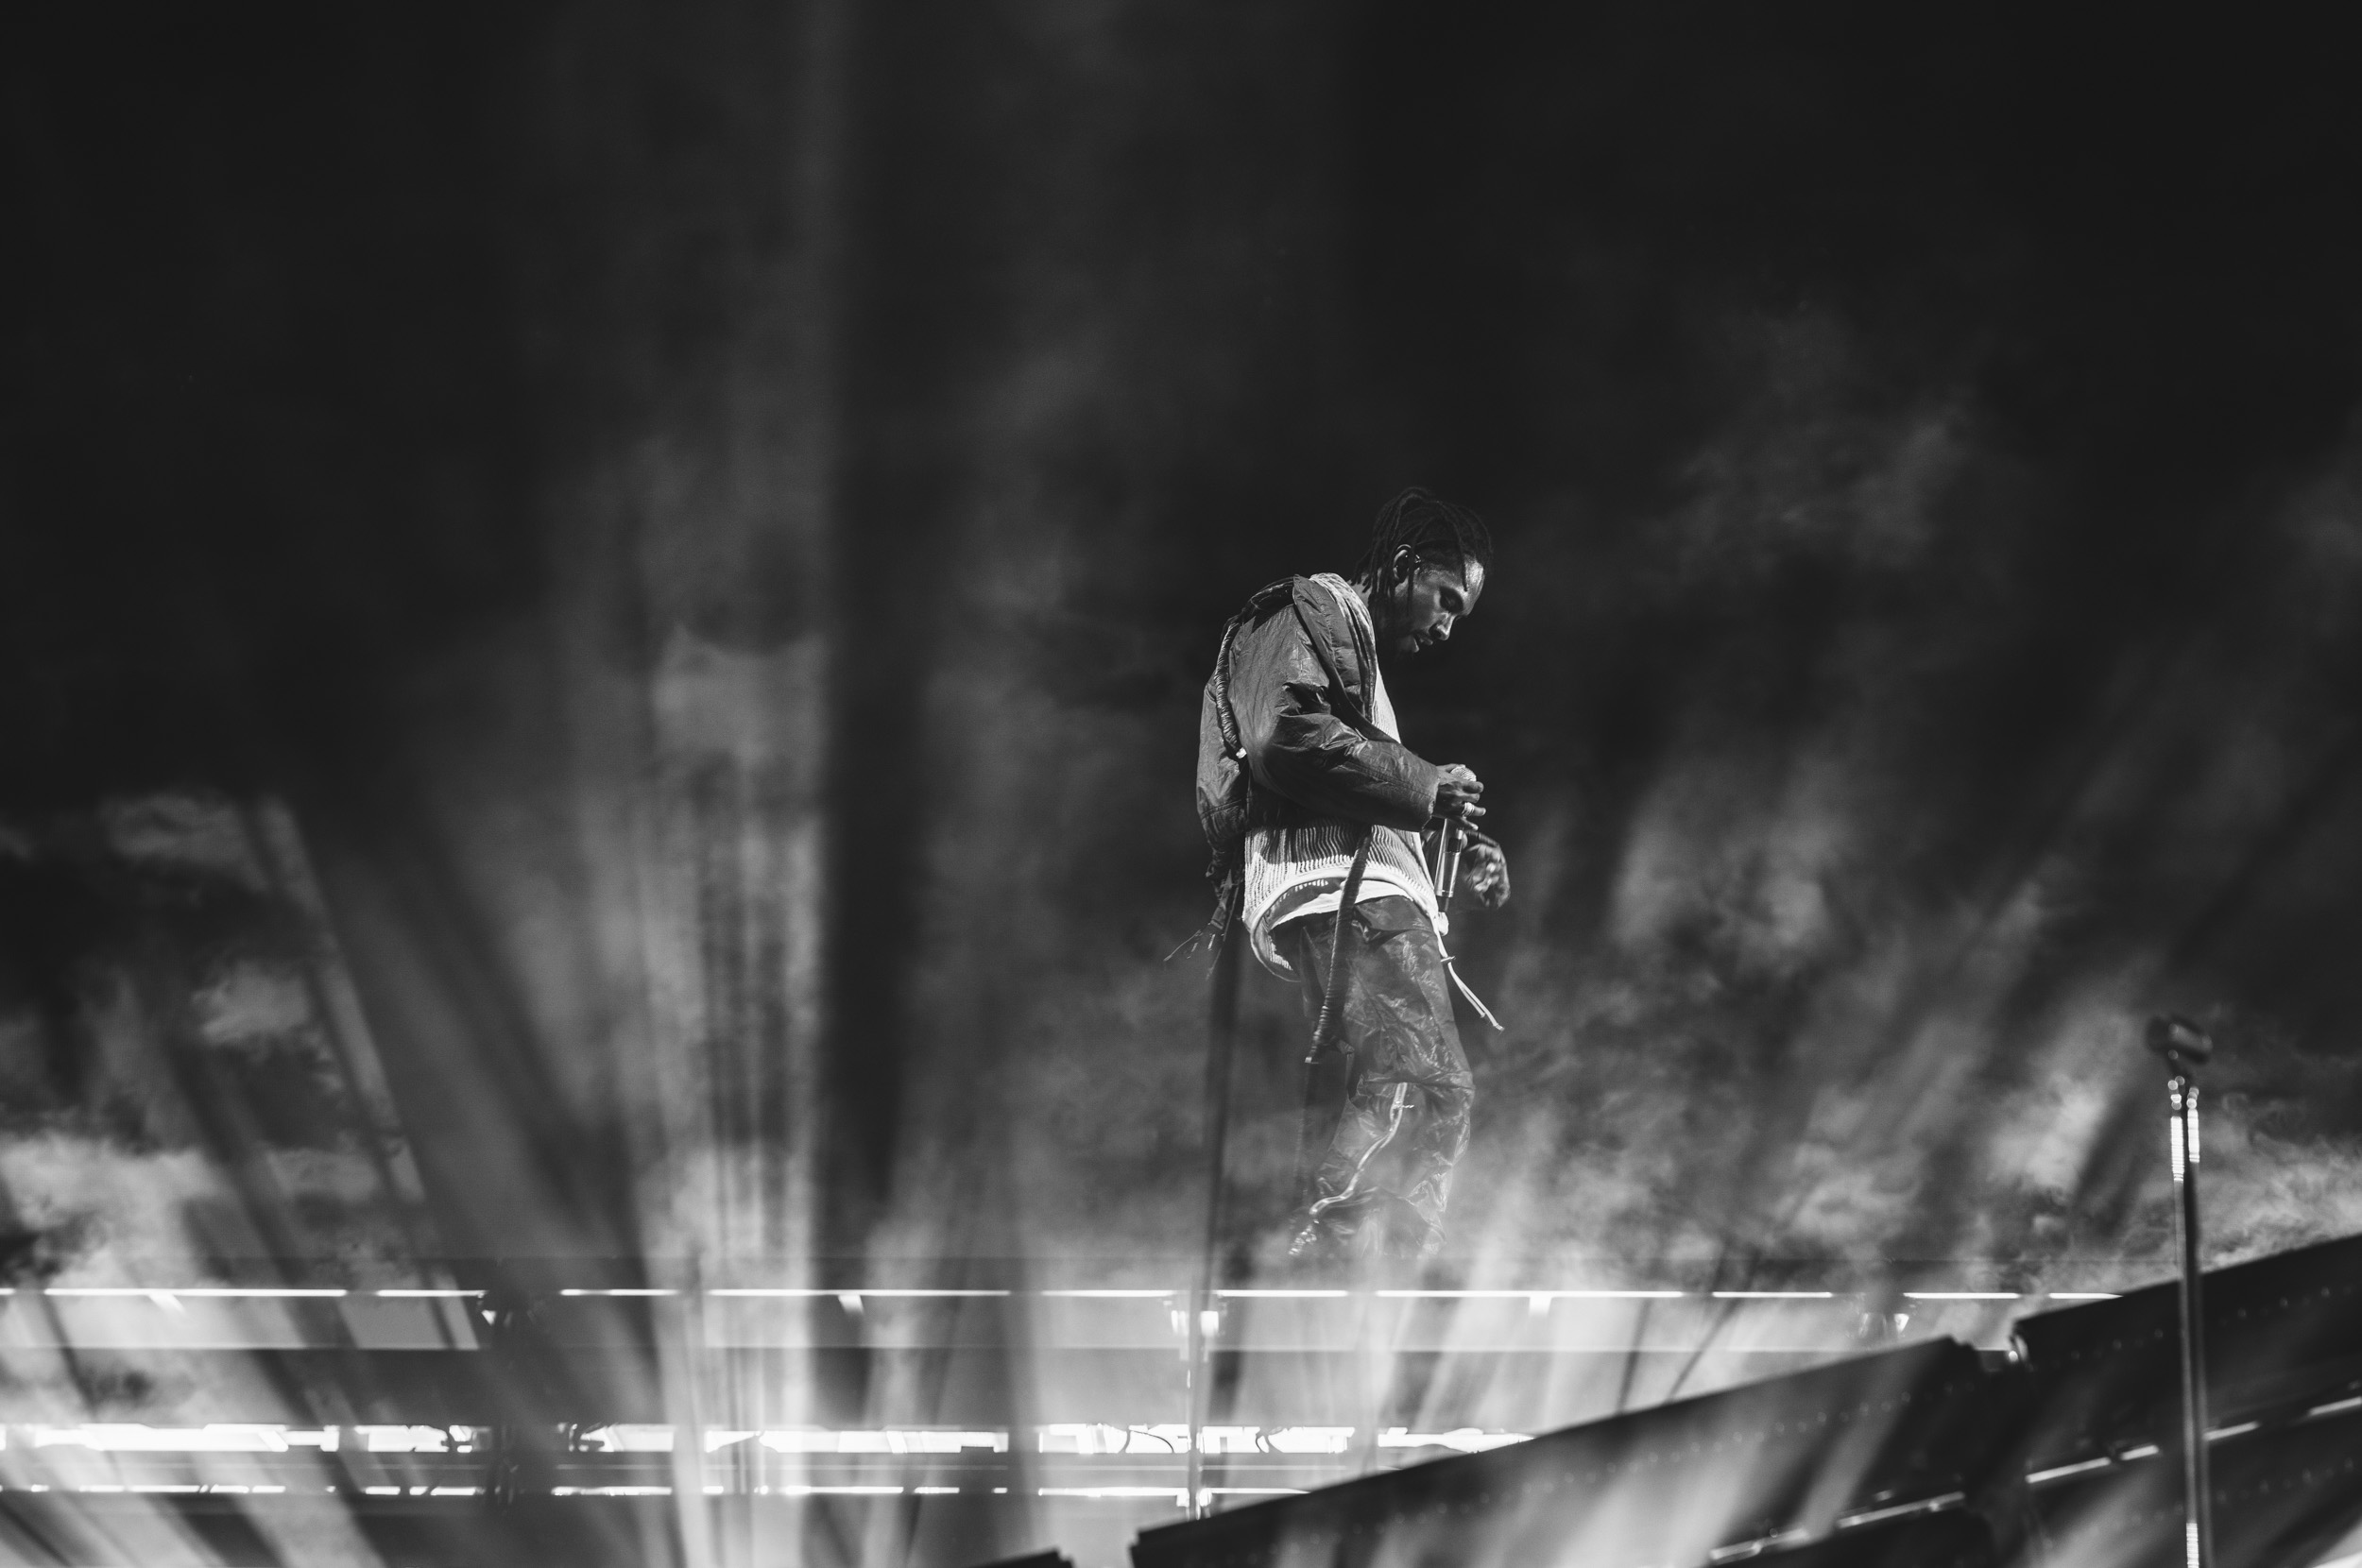 Miguel at Coachella 2018 - photographed with a Sony a7R III - Sigma 85mm f/1.4 Art - Sigma MC‑11 Mount Converter